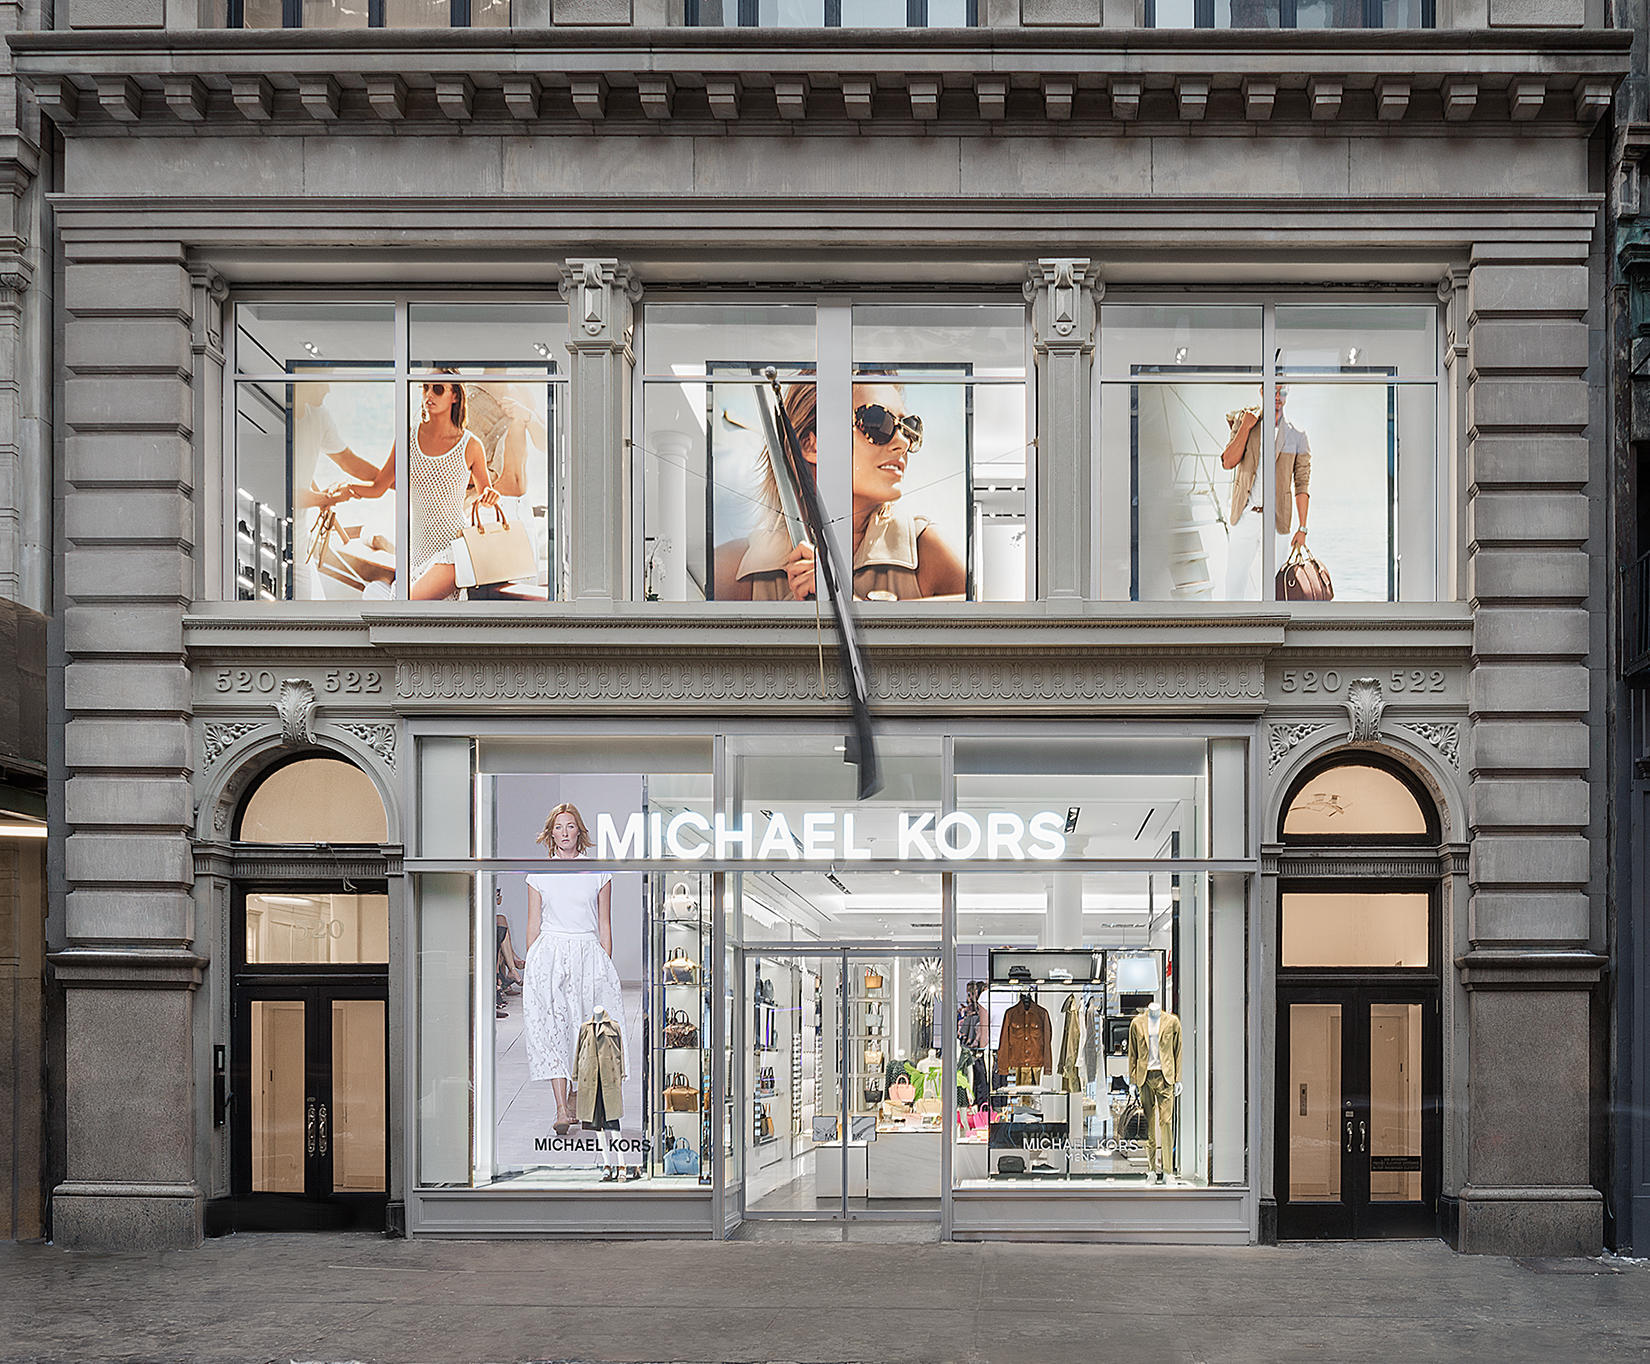 michael kors val d europe